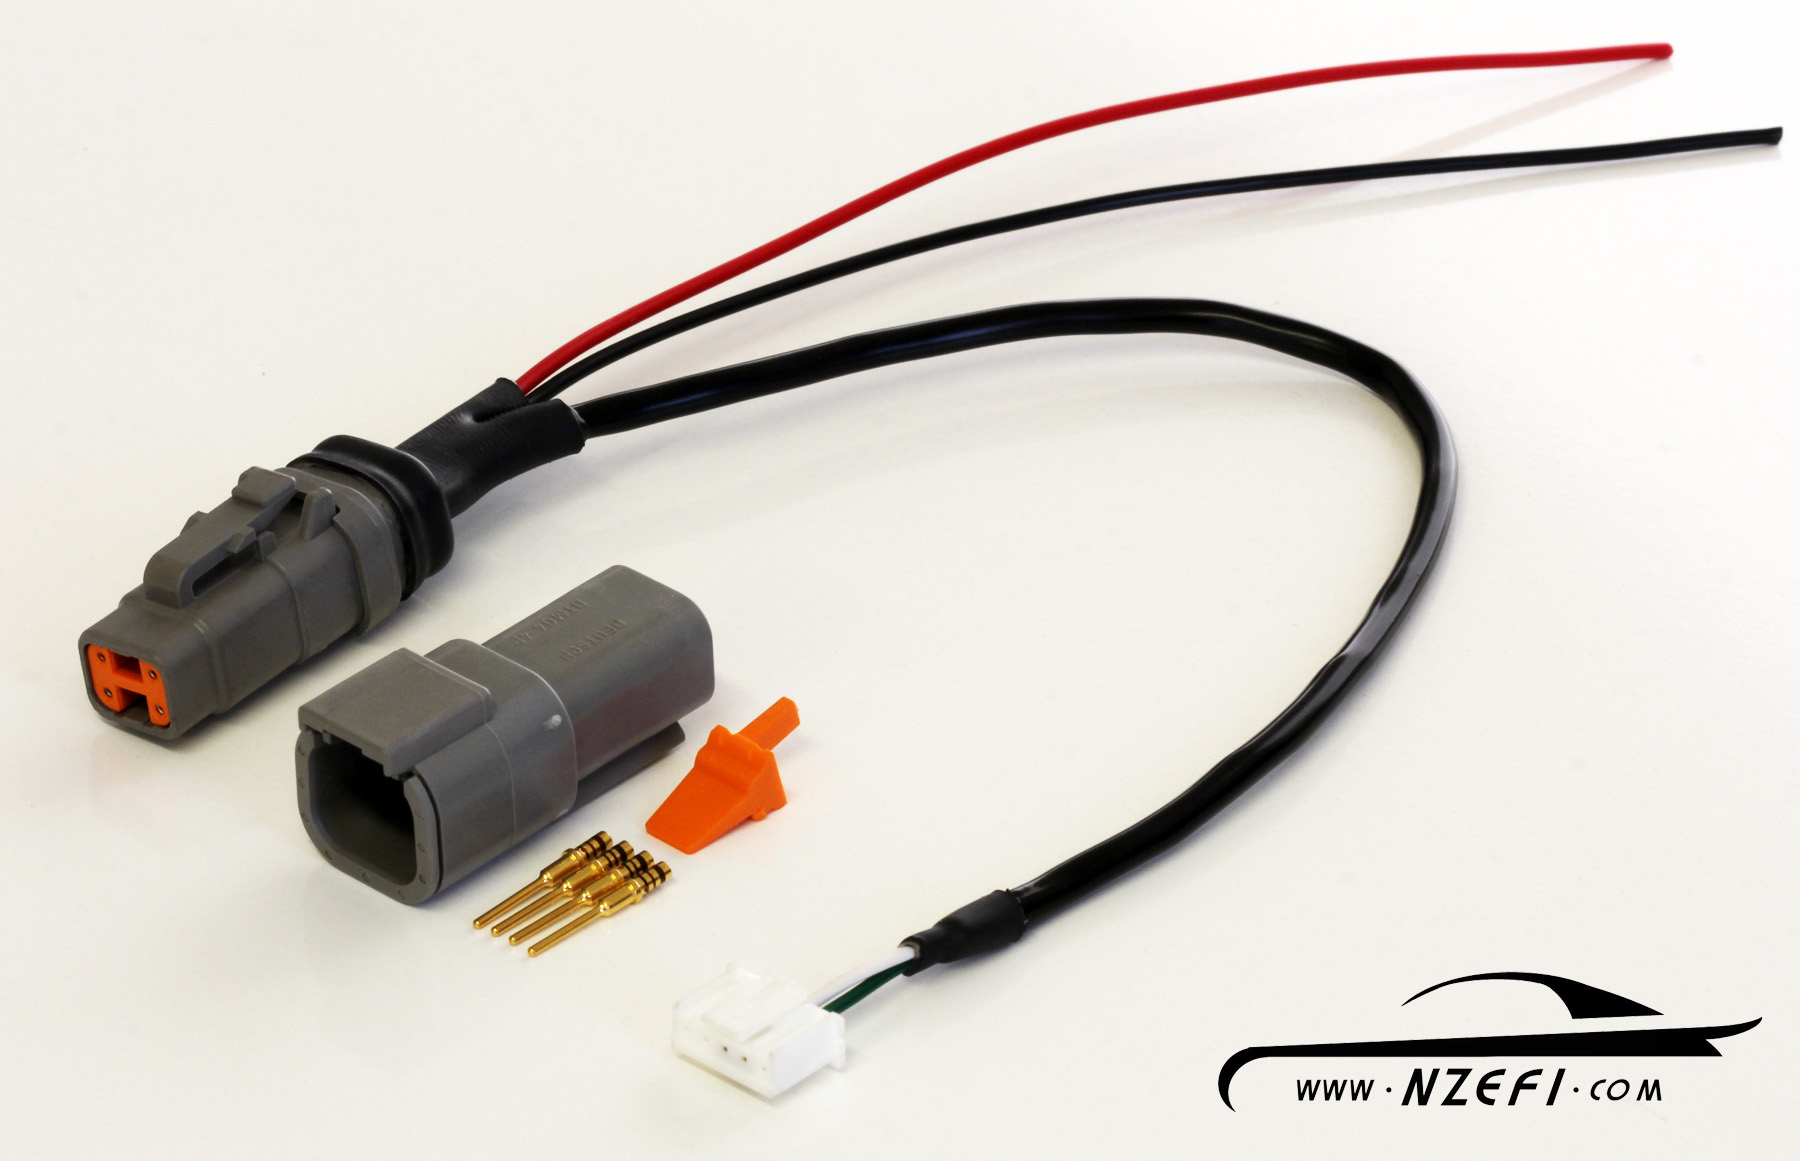 NZEFI Link G4 / G4+ Plug-in ECU to CAN / Dash Cable